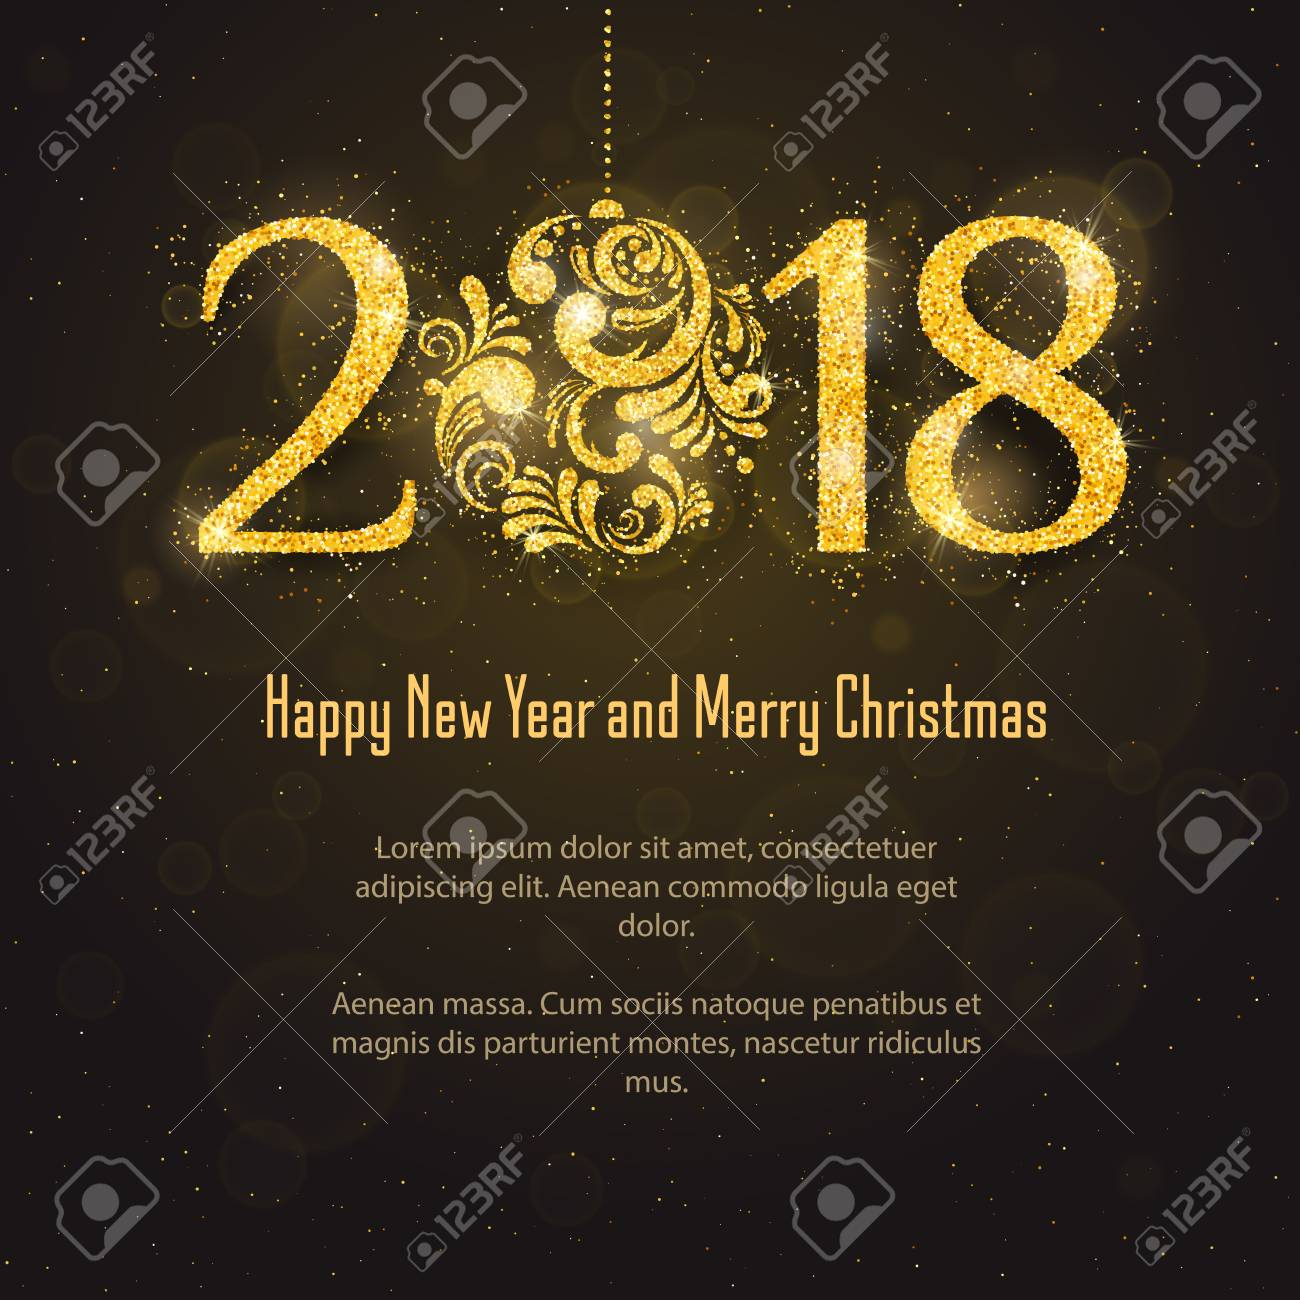 Vector 2018 Happy New Year And Merry Christmas Greeting Card Stock